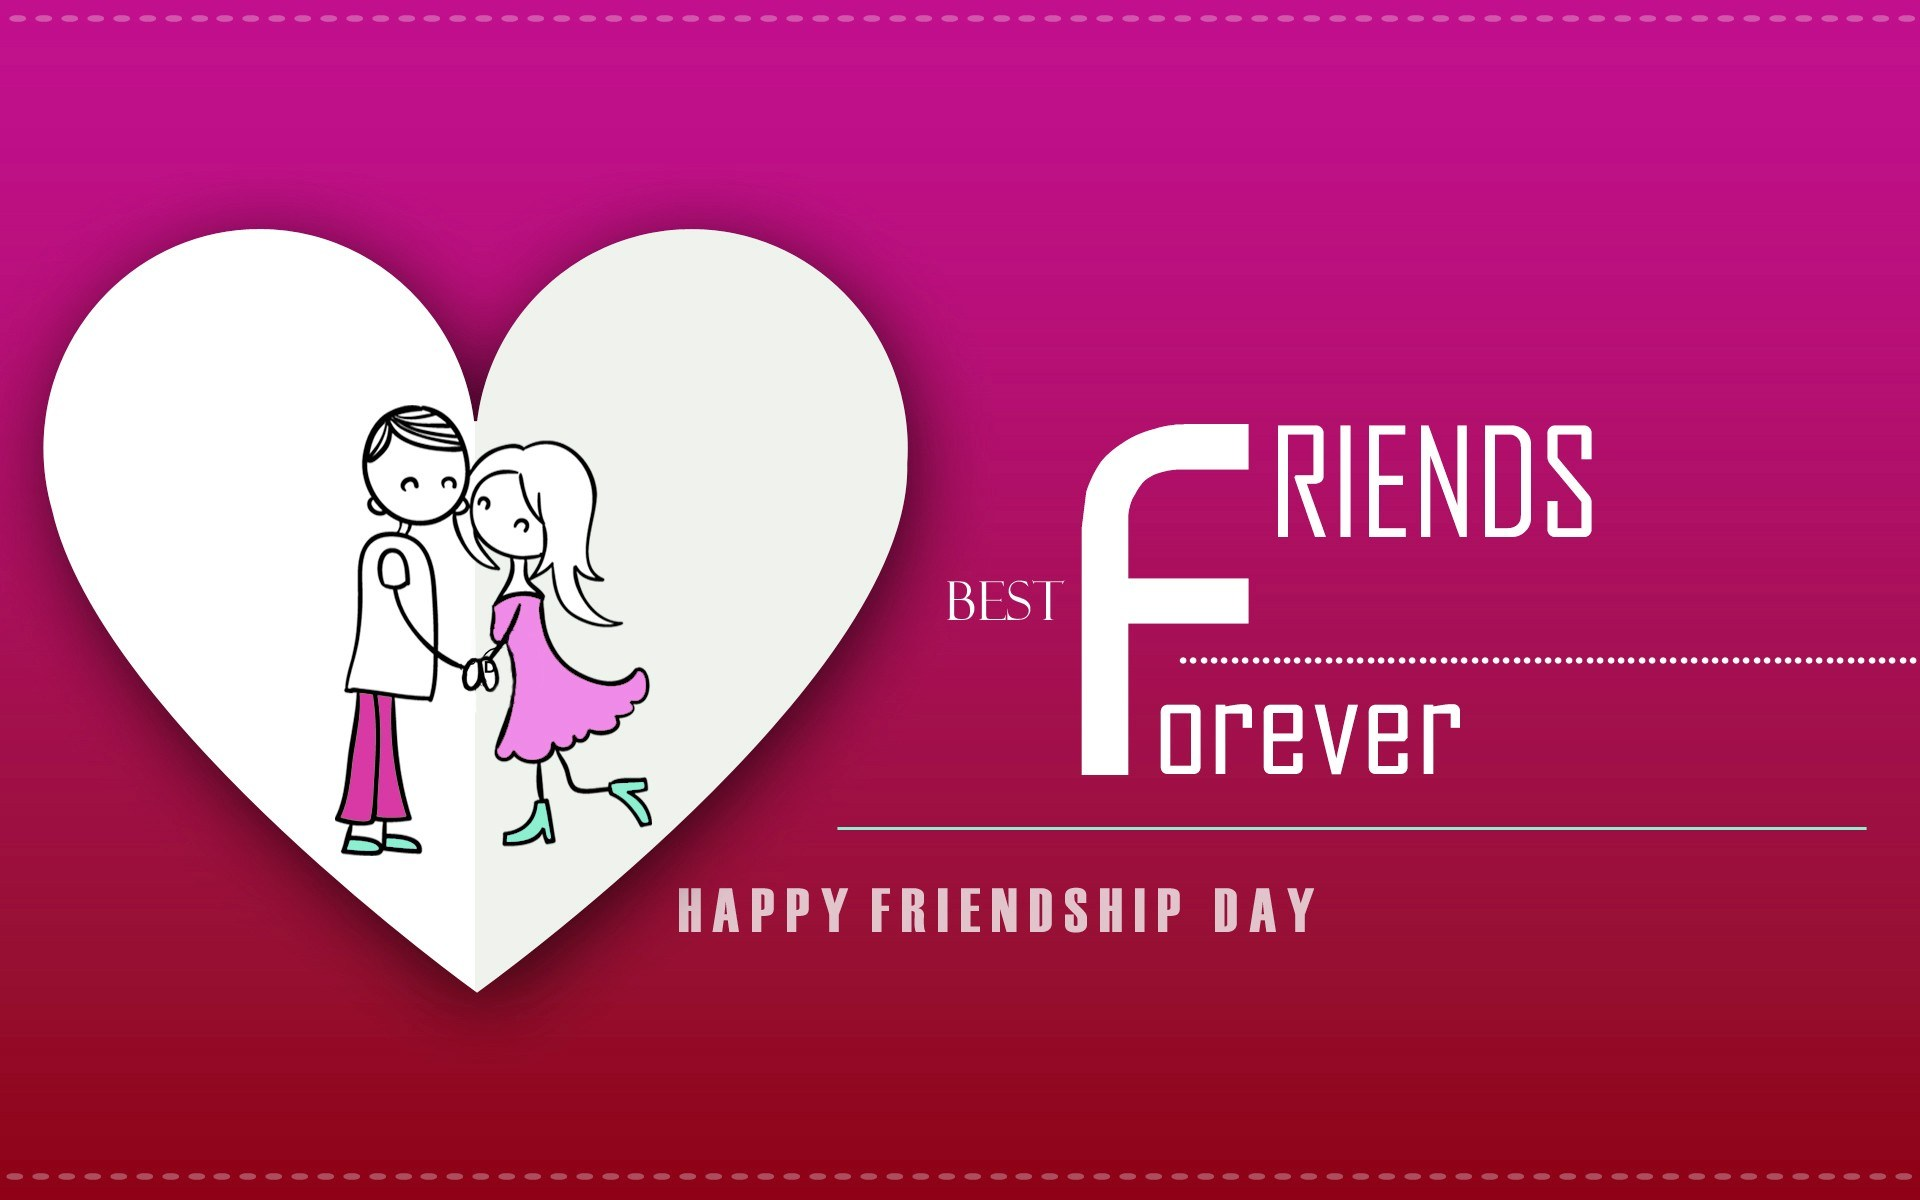 Happy Friendship Day Wallpapers Quotes Messages 1920x1200